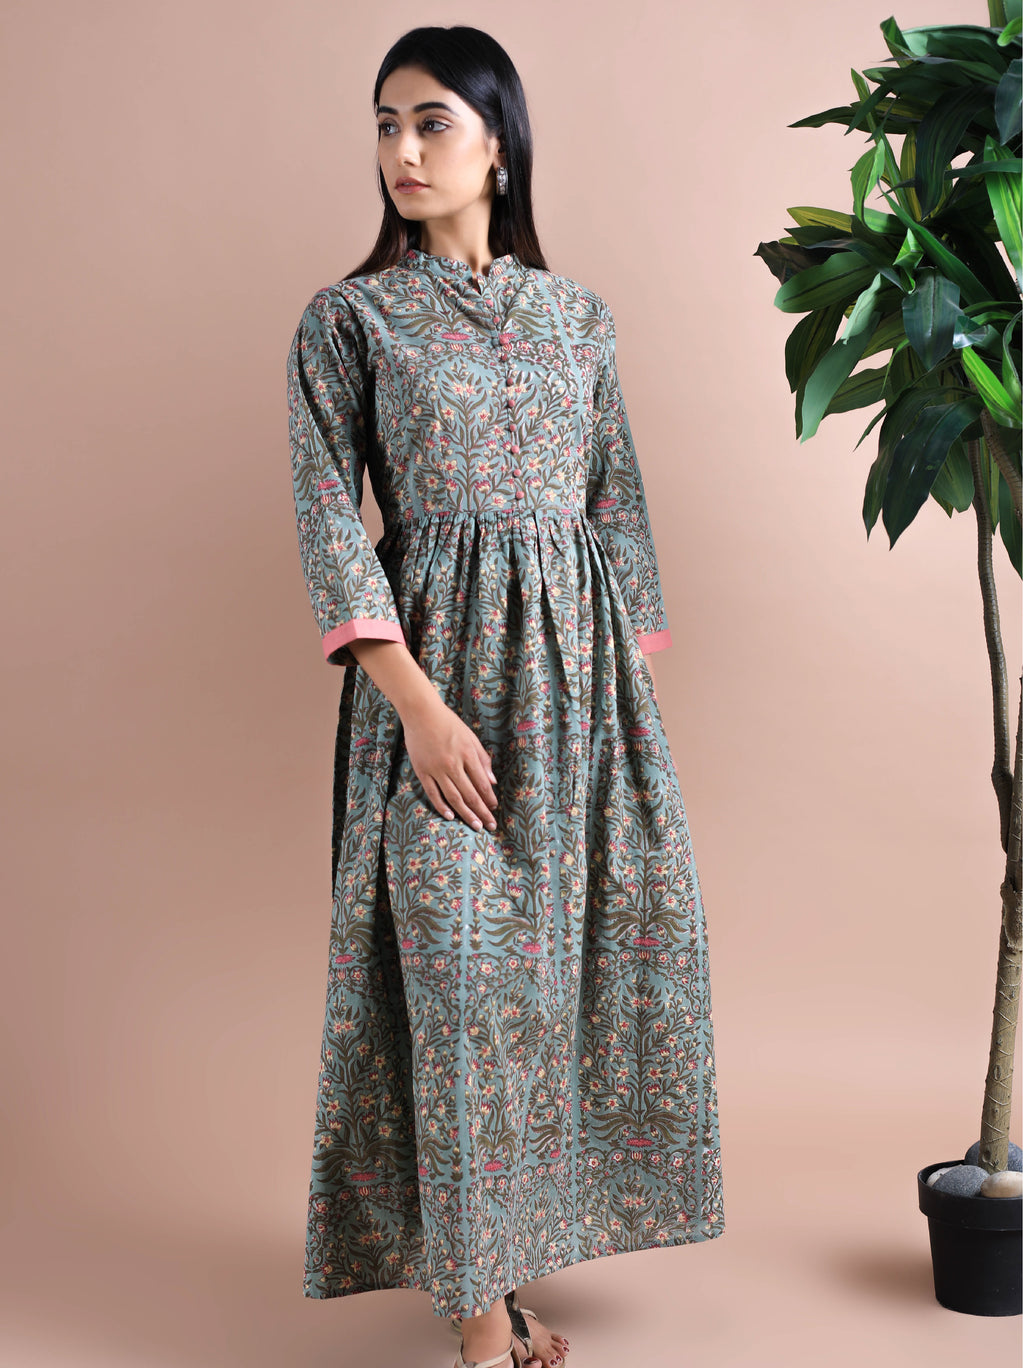 Bottle Green Soft Cotton Maxi Dress